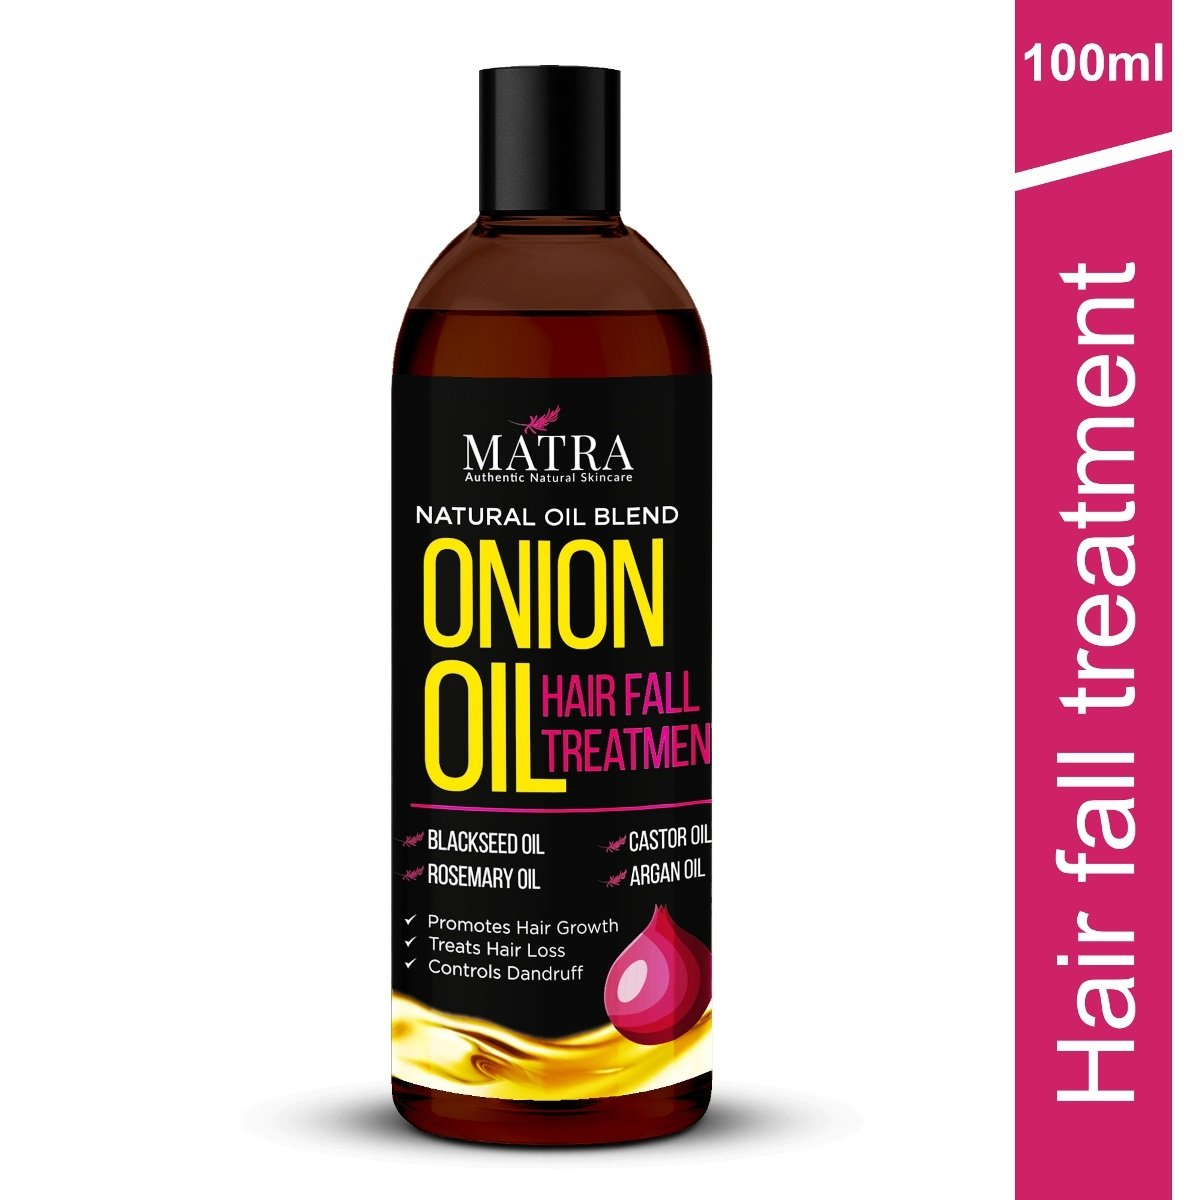 Onion Hair Growth Oil with Blackseed Oil, Castor Oil & Argan Oil